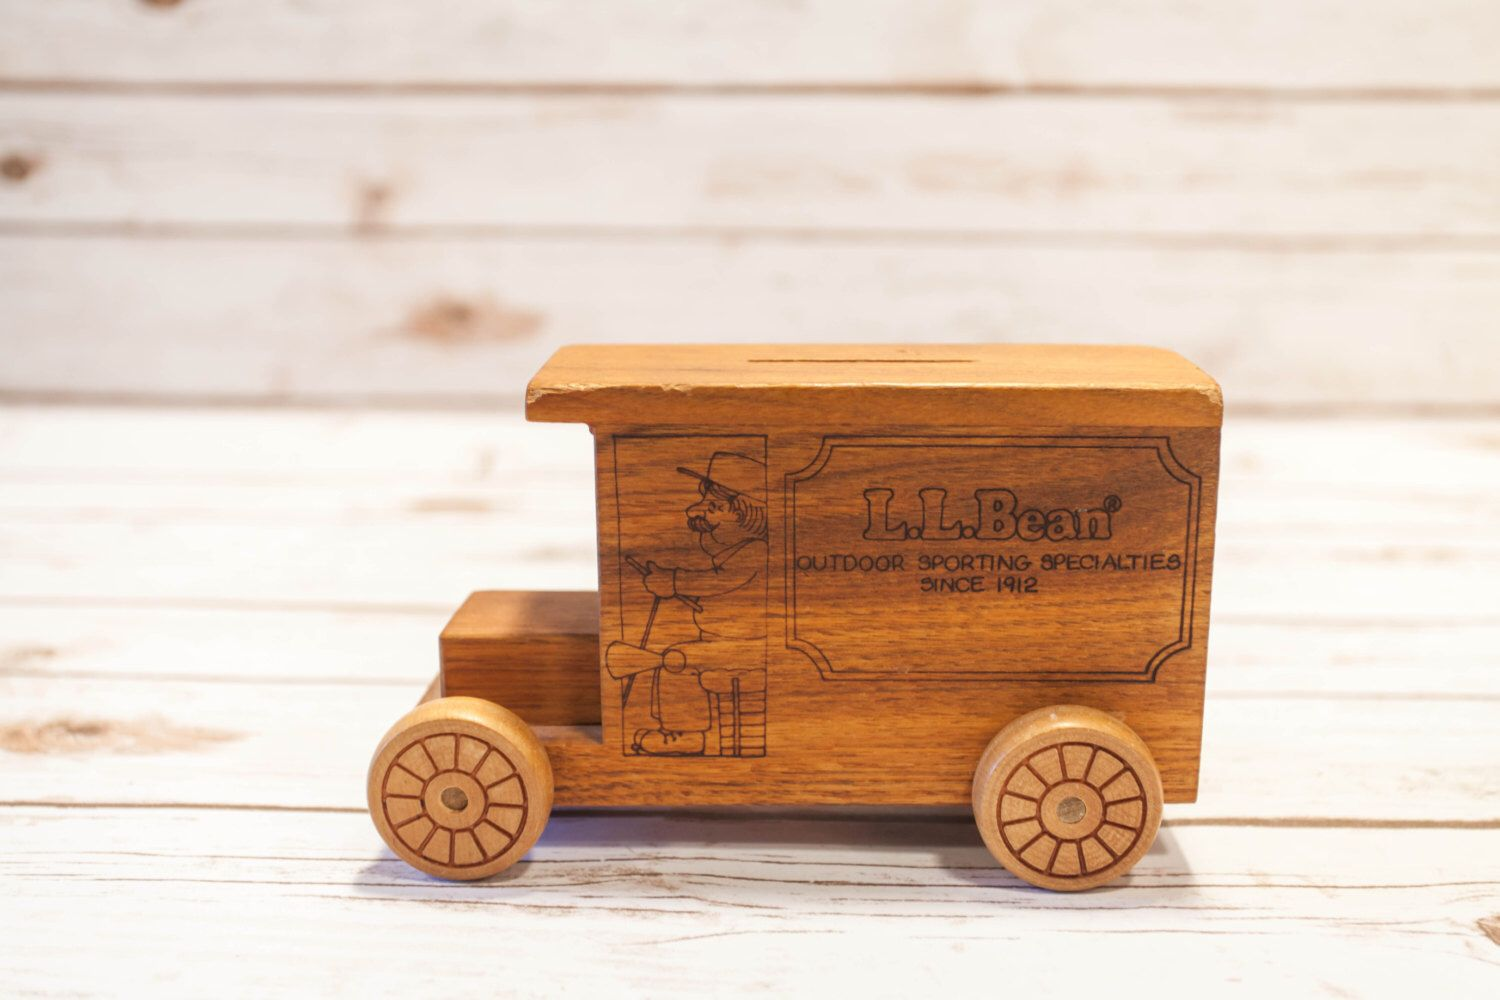 vintage l.l bean wooden toy bank, toystalgia inc. golden